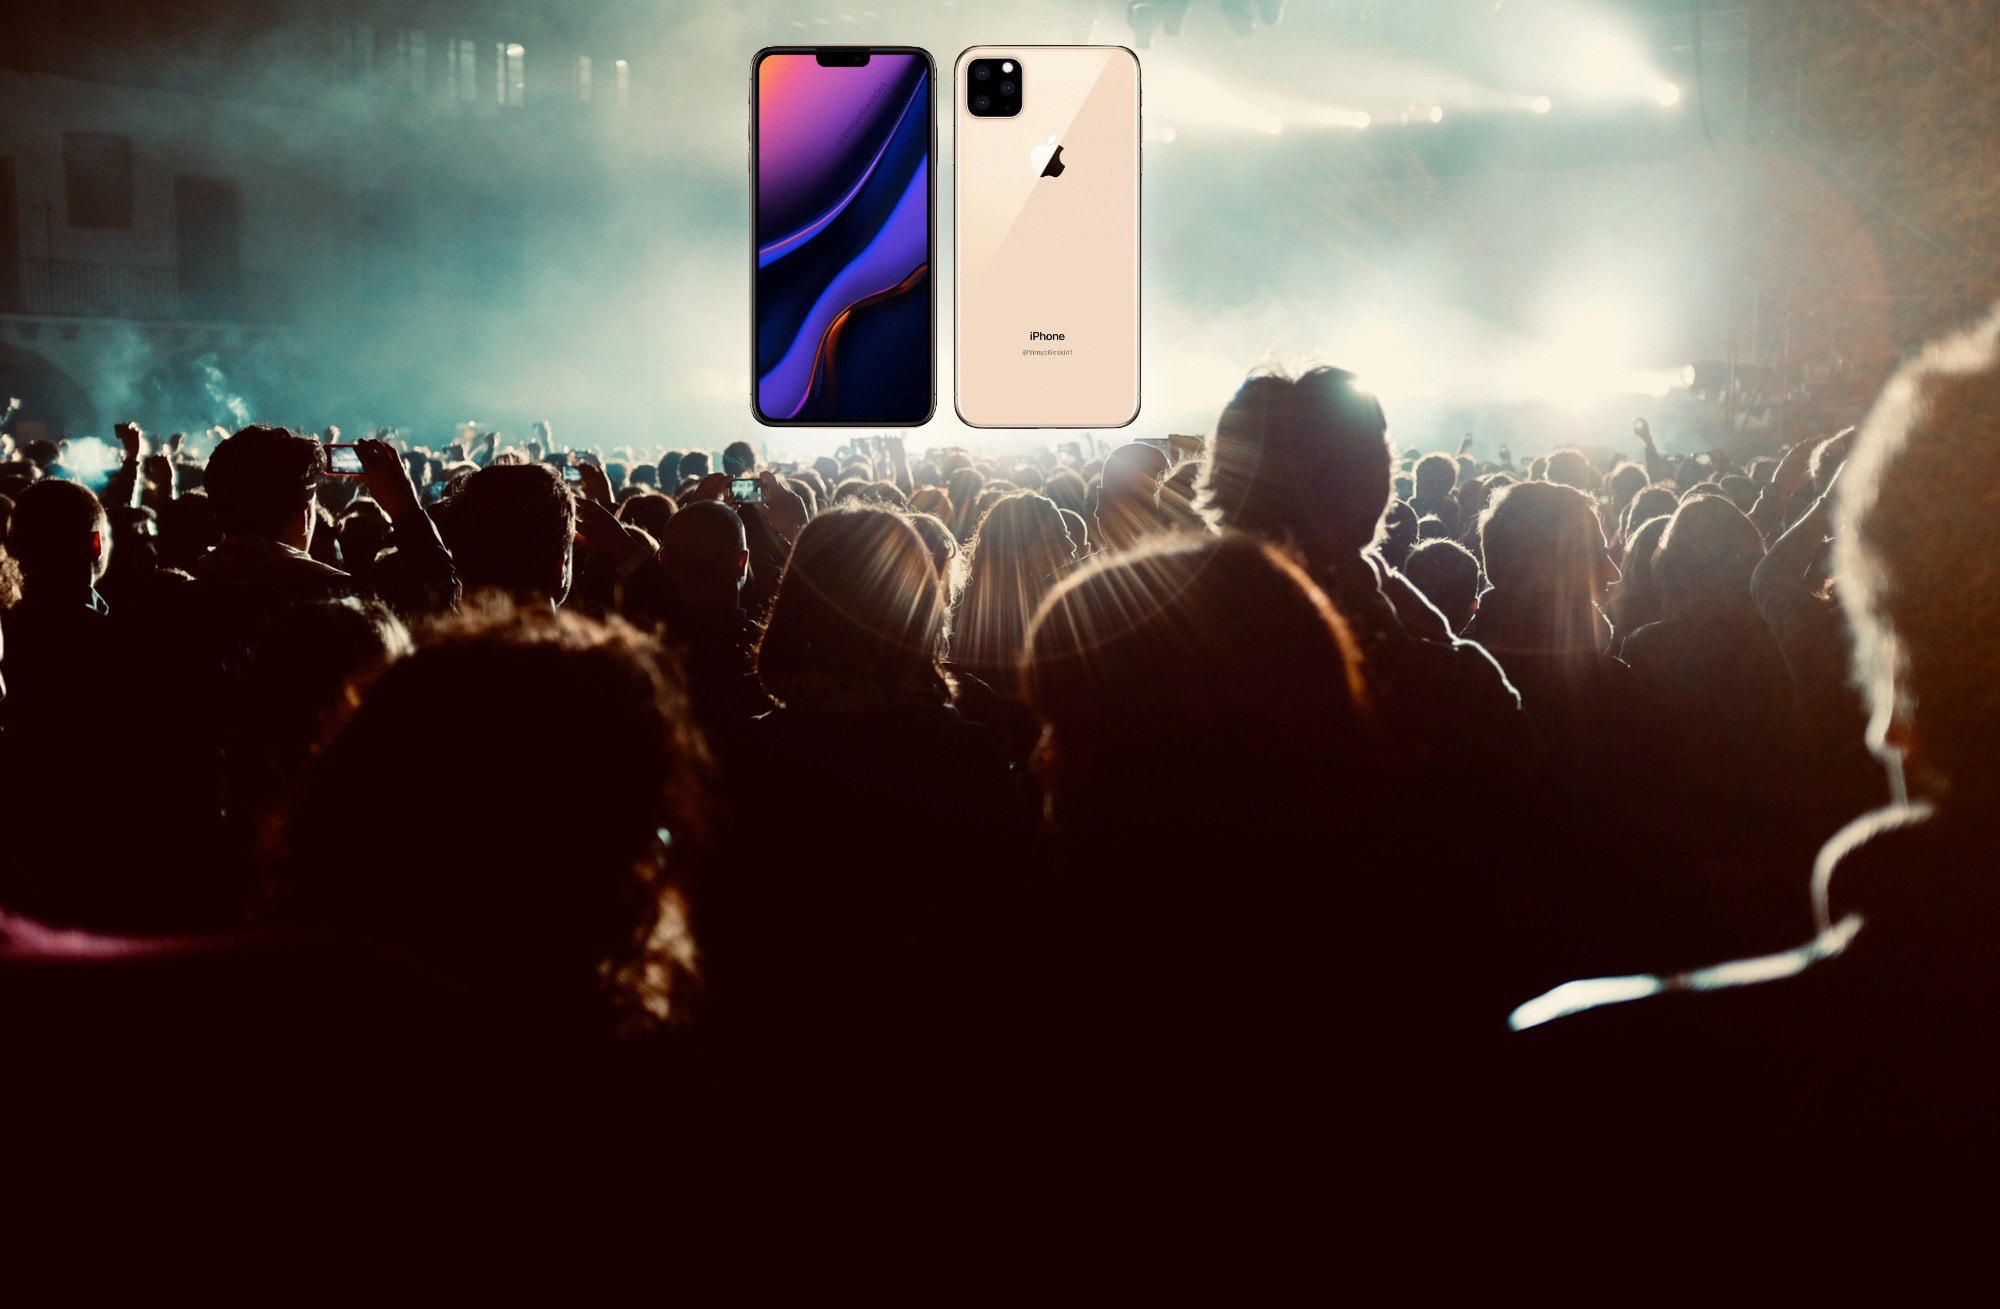 Apple 2019 iPhone event: How to watch the iPhone 11 event